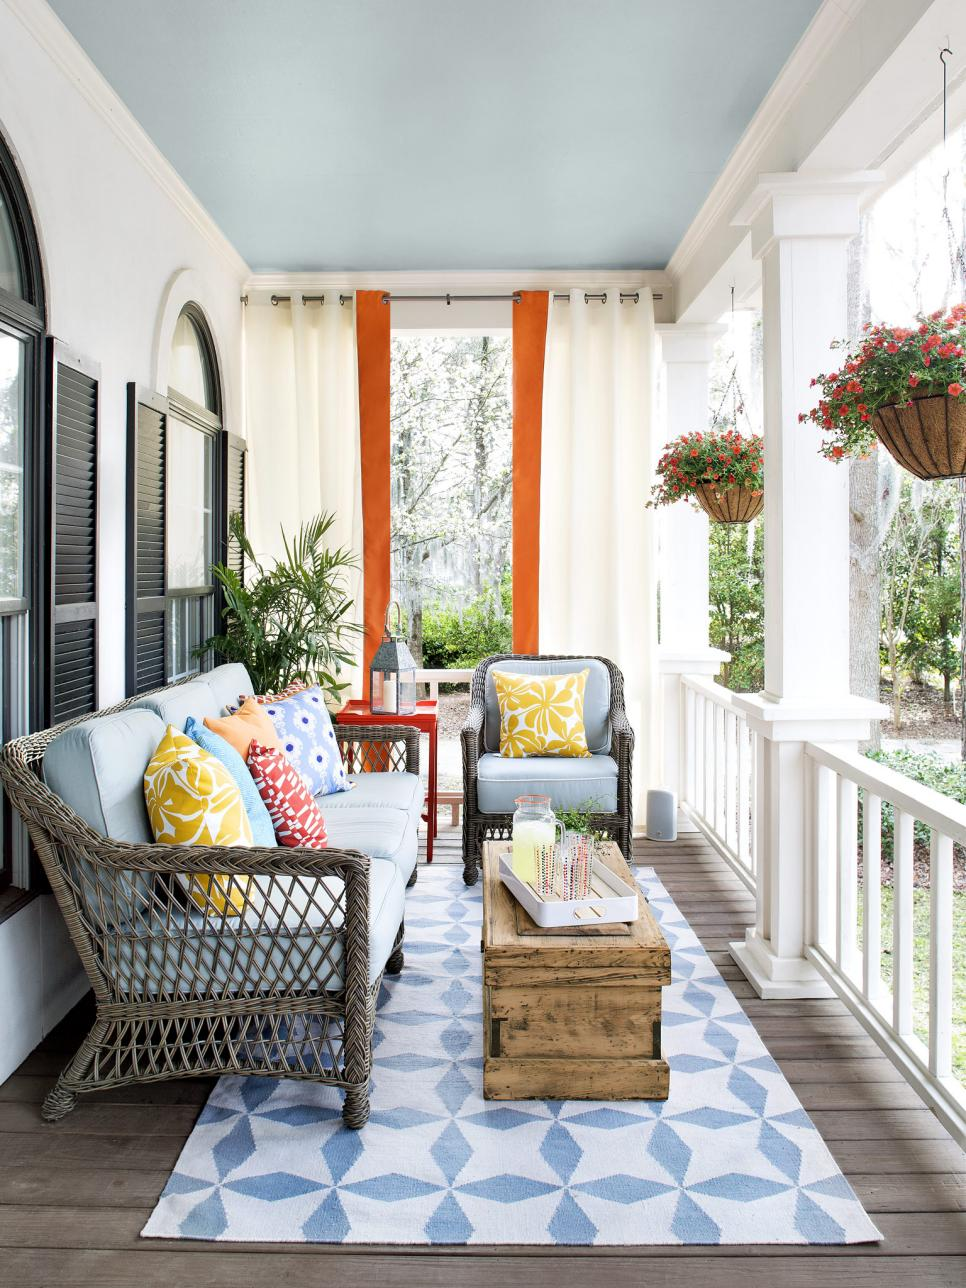 "Foto: Reprodução / <a href=""http://www.hgtv.com/design/outdoor-design/outdoor-spaces/22-things-to-put-on-a-porch-pictures?soc=hgtvcom27159146"" target=""_blank"">Hgtv</a>"